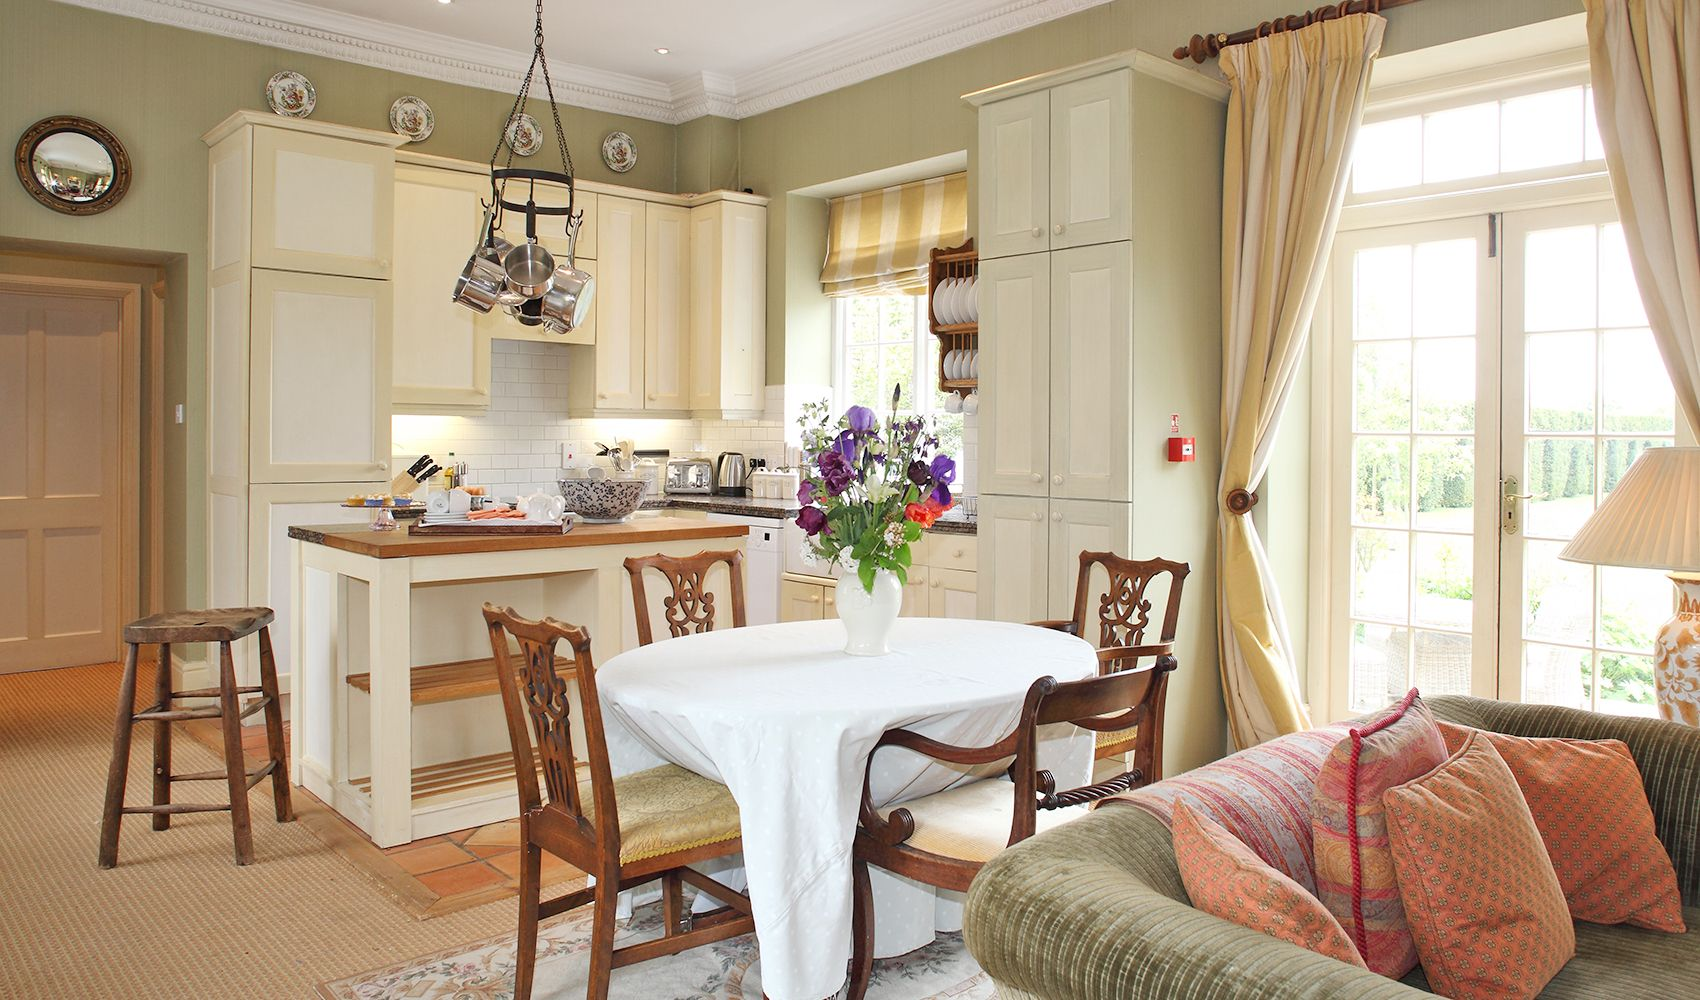 Ground floor: Kitchen and dining areas in the open plan living space